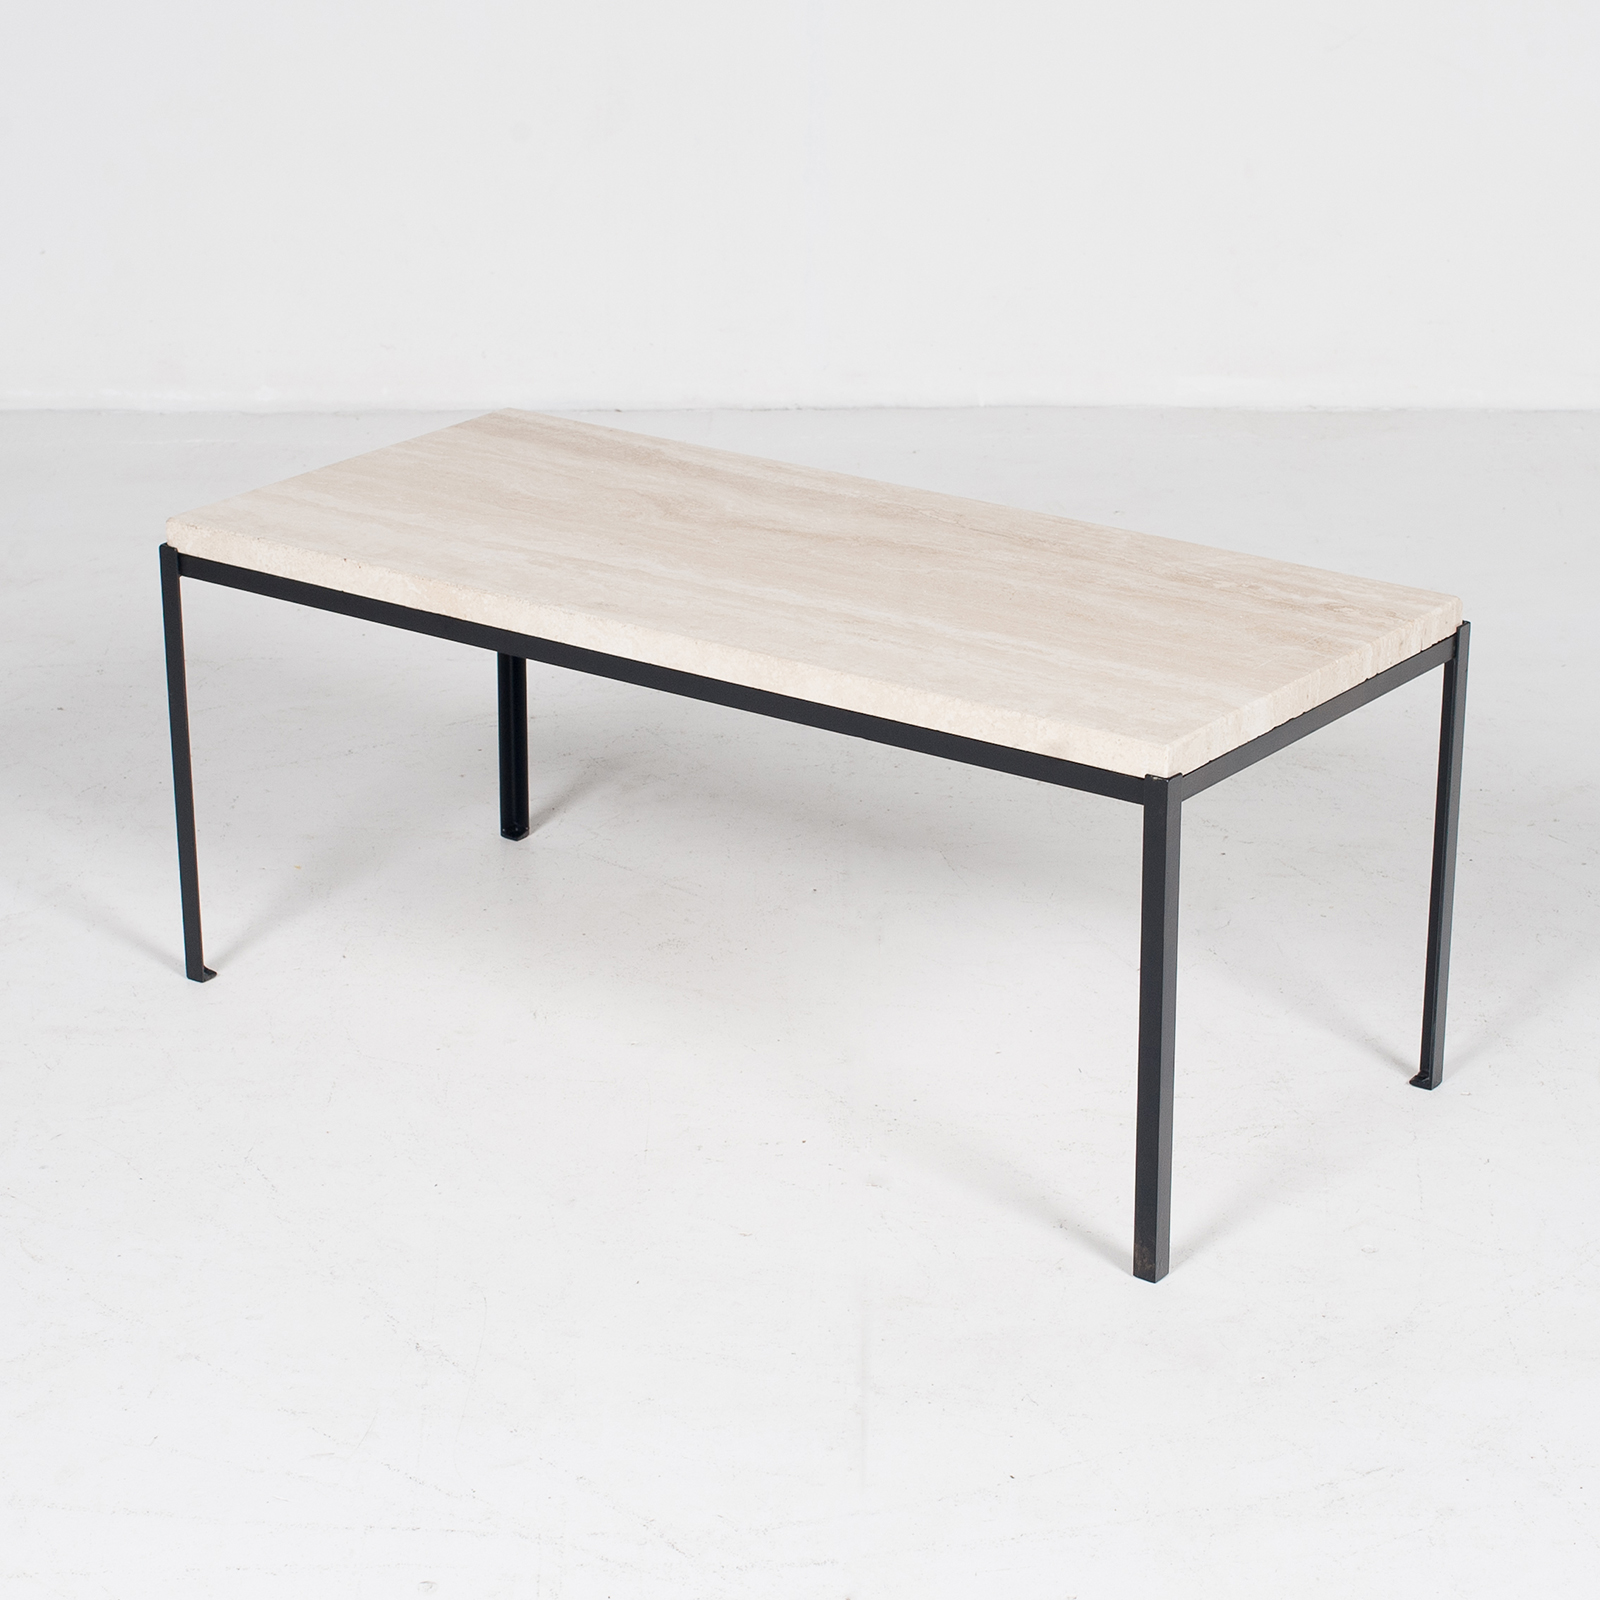 Coffee Table By Artemide With Travertine Top, 1970s, The Netherlands6